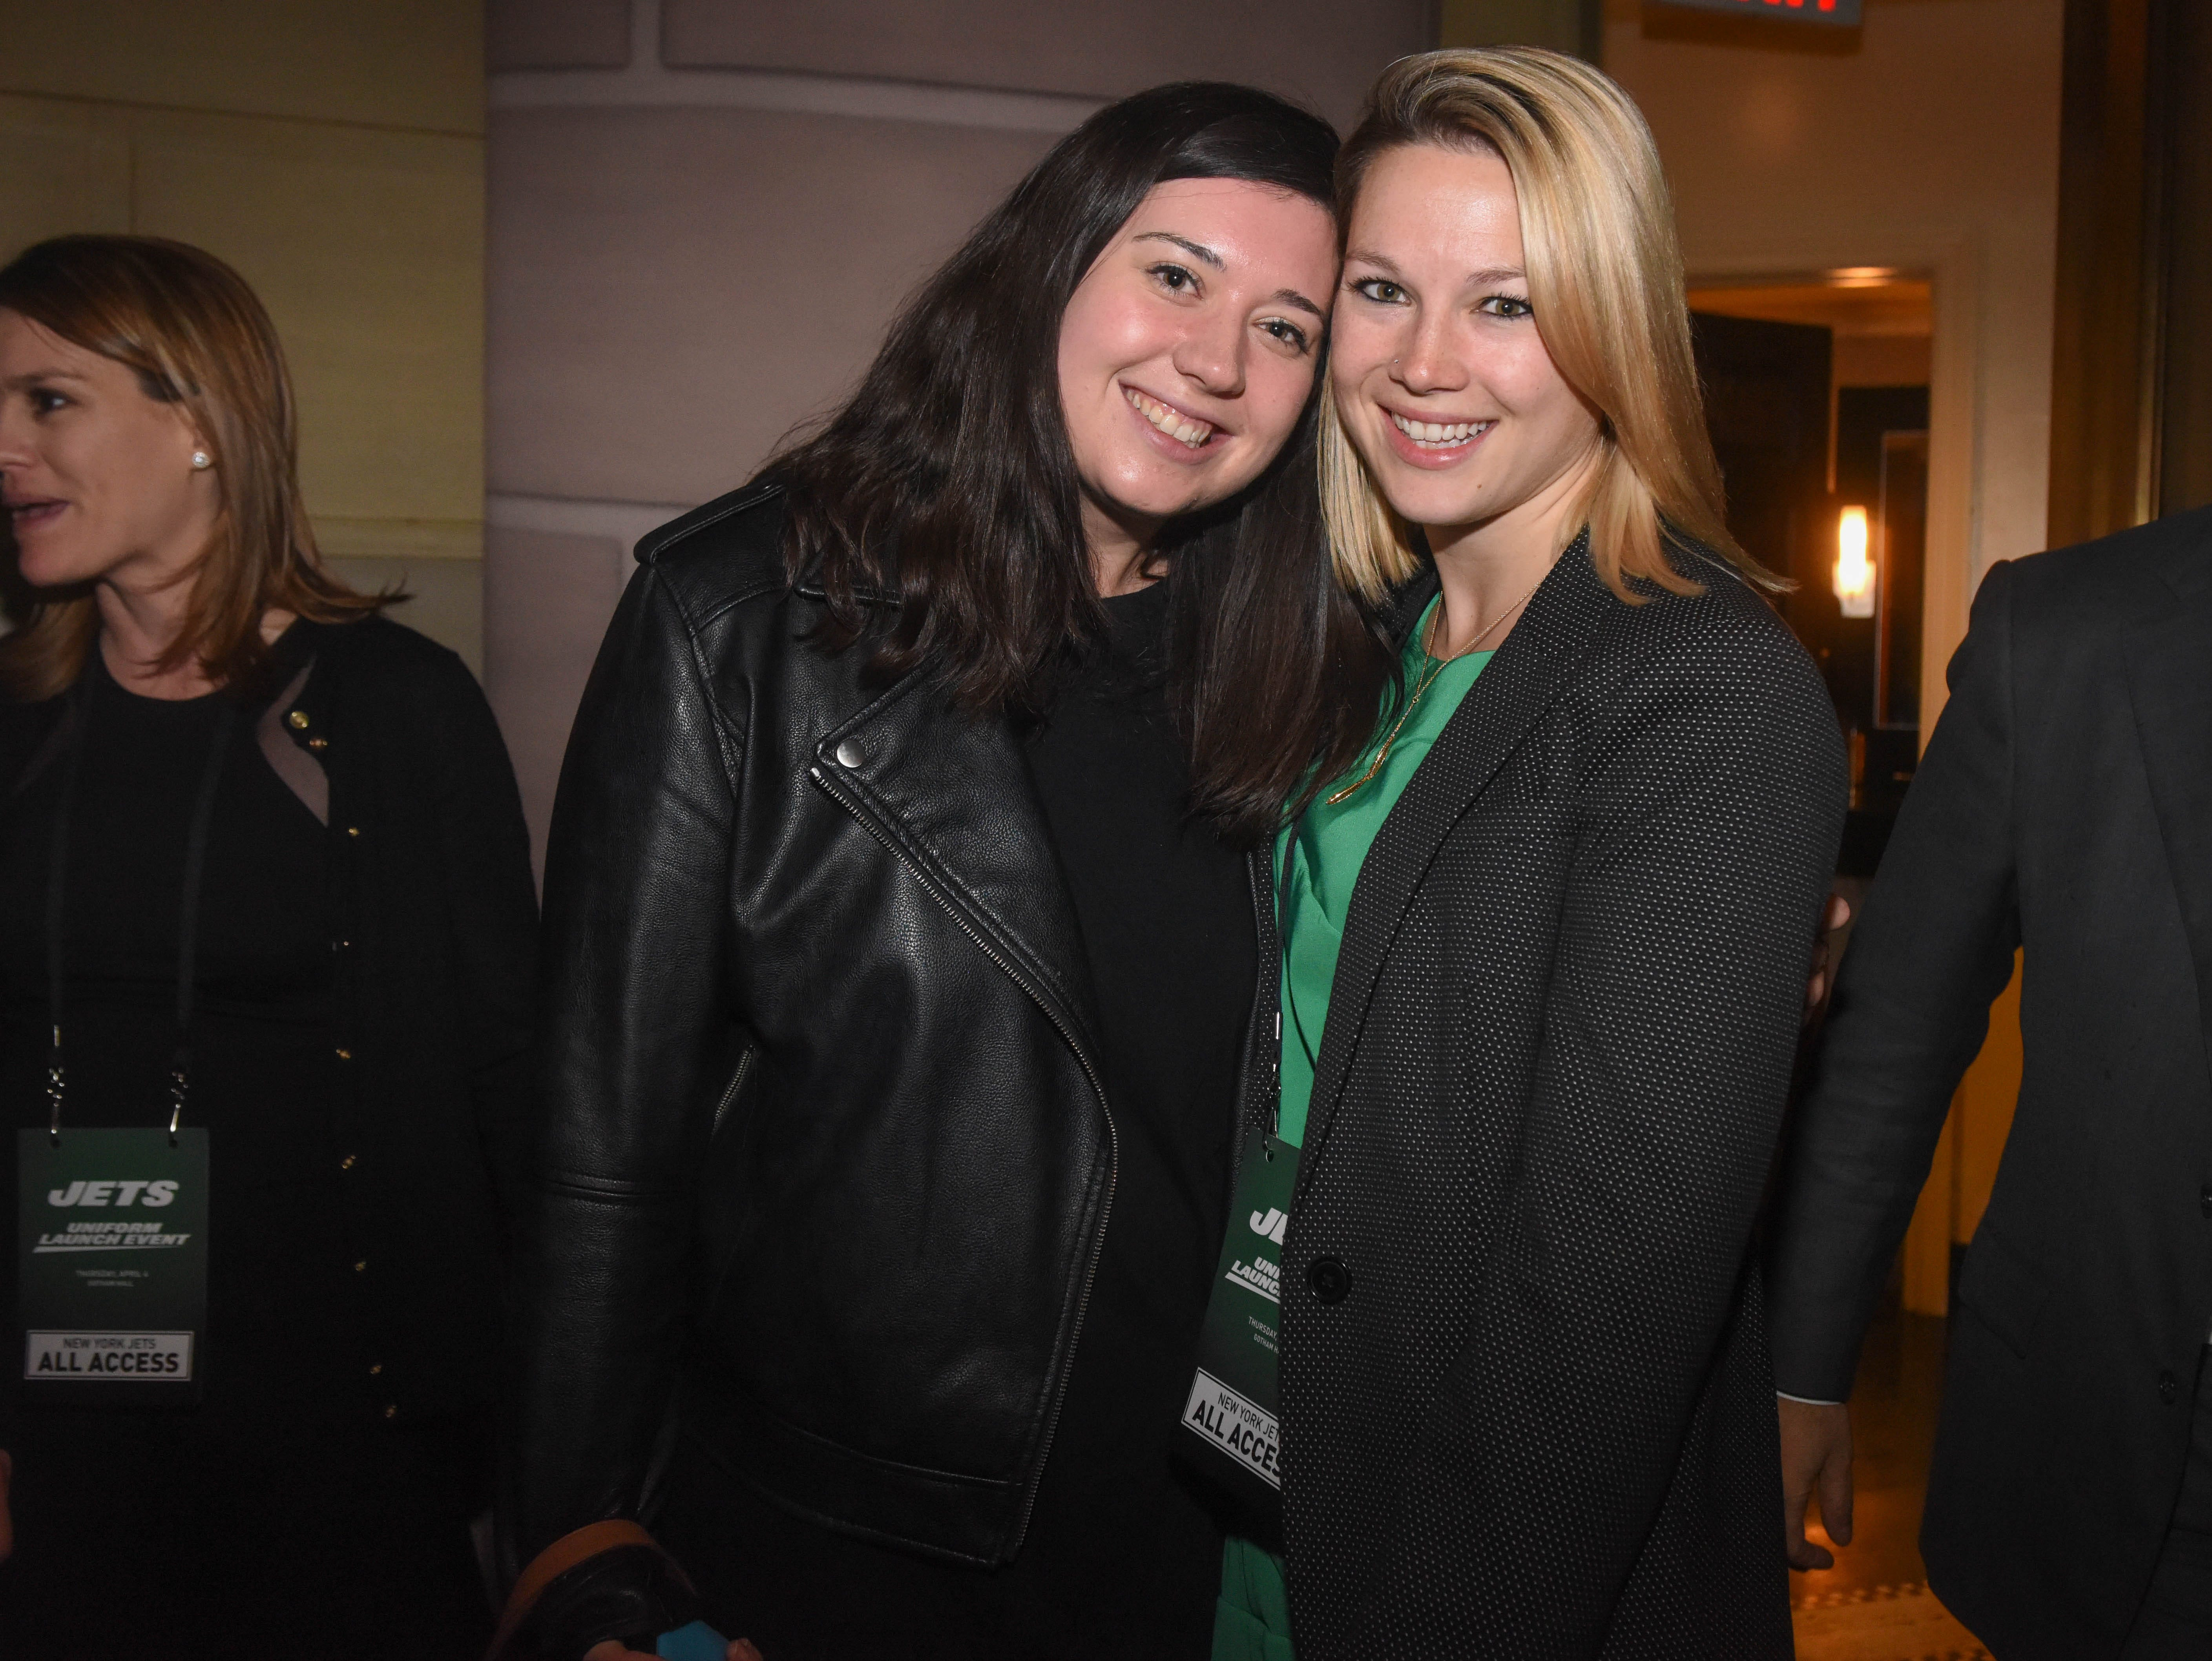 Lindsay and Mary Kate. The NY Jets unveiled their new football uniforms with an event hosted by JB Smoove at Gotham Hall in New York. 04/05/2019